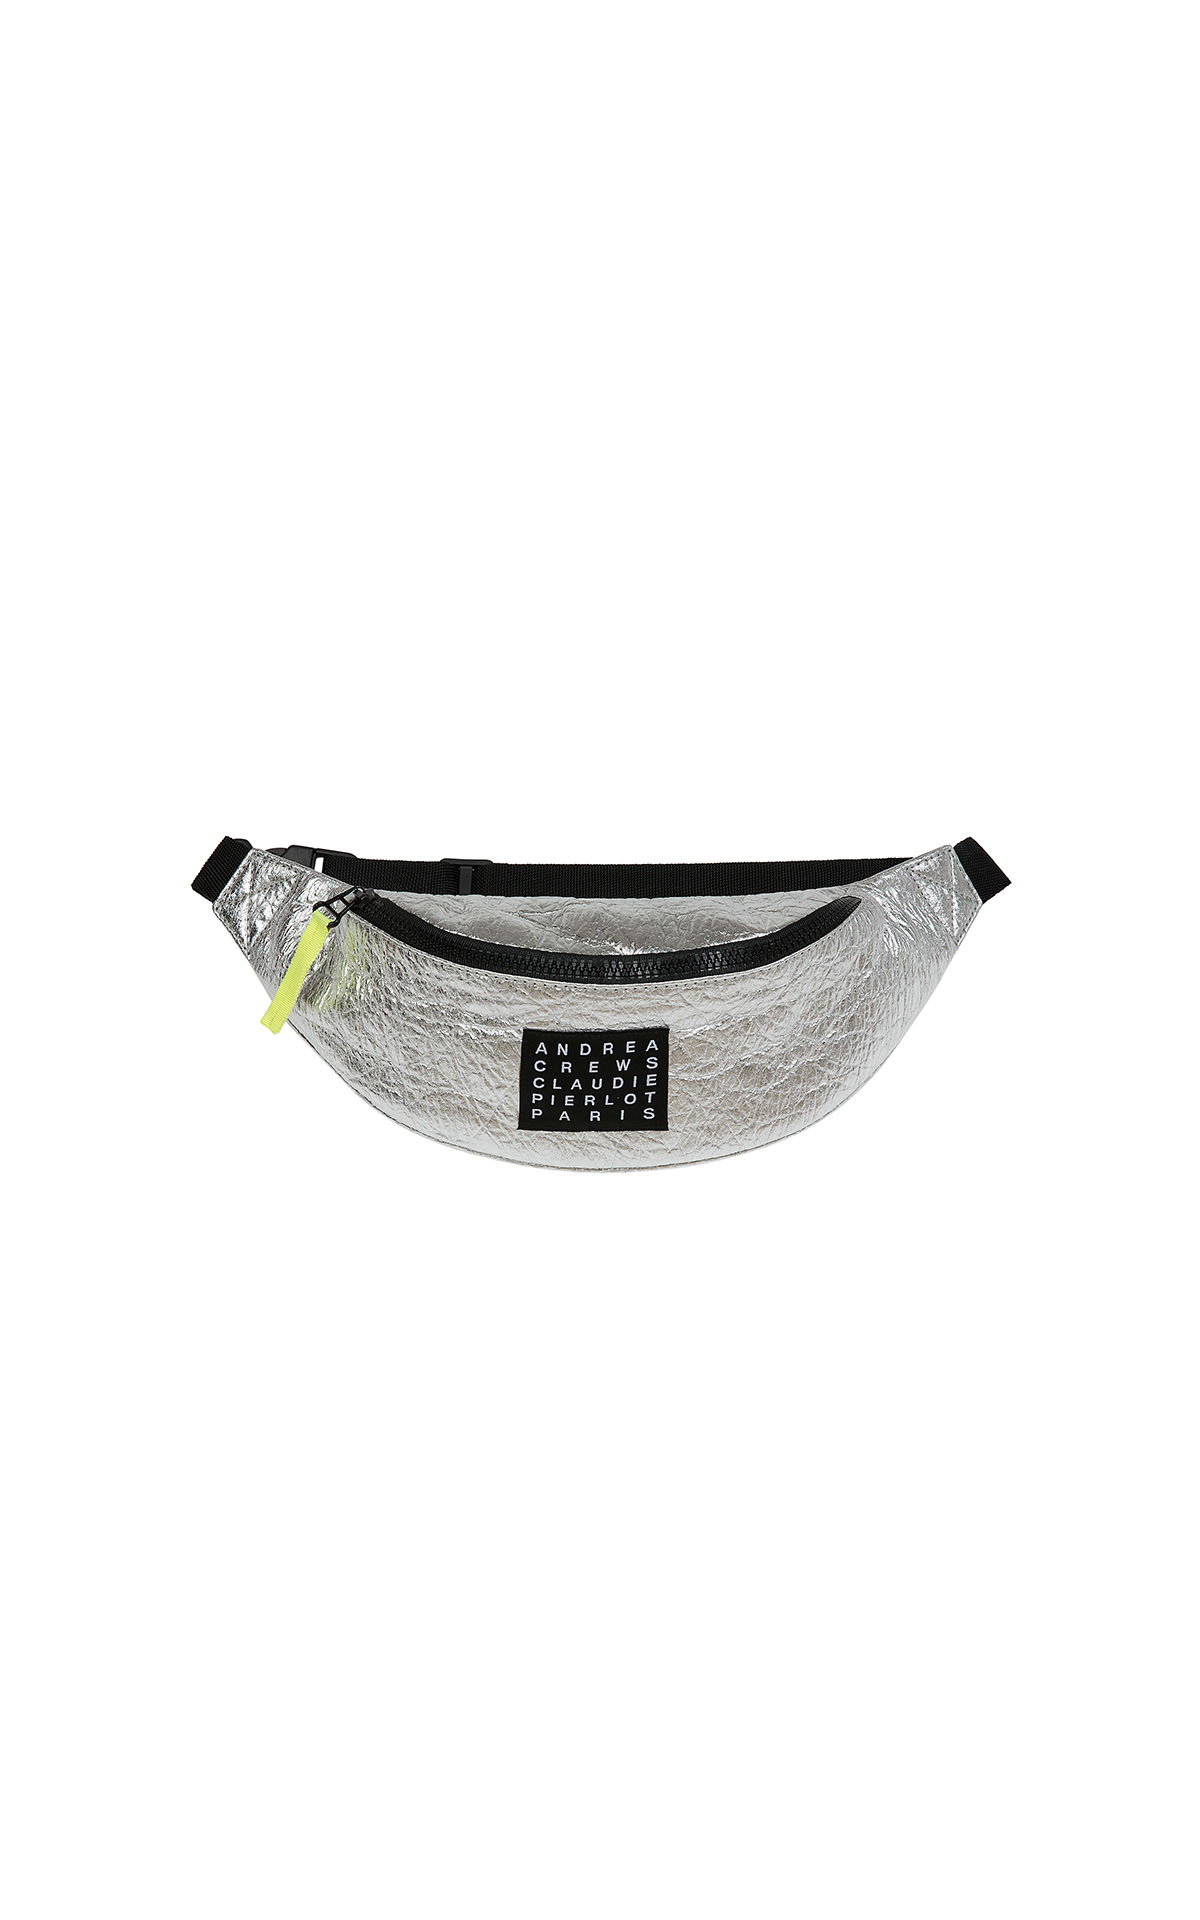 Claudie Pierlot pineapple leather fanny pack at the Bicester Village Shopping Collection